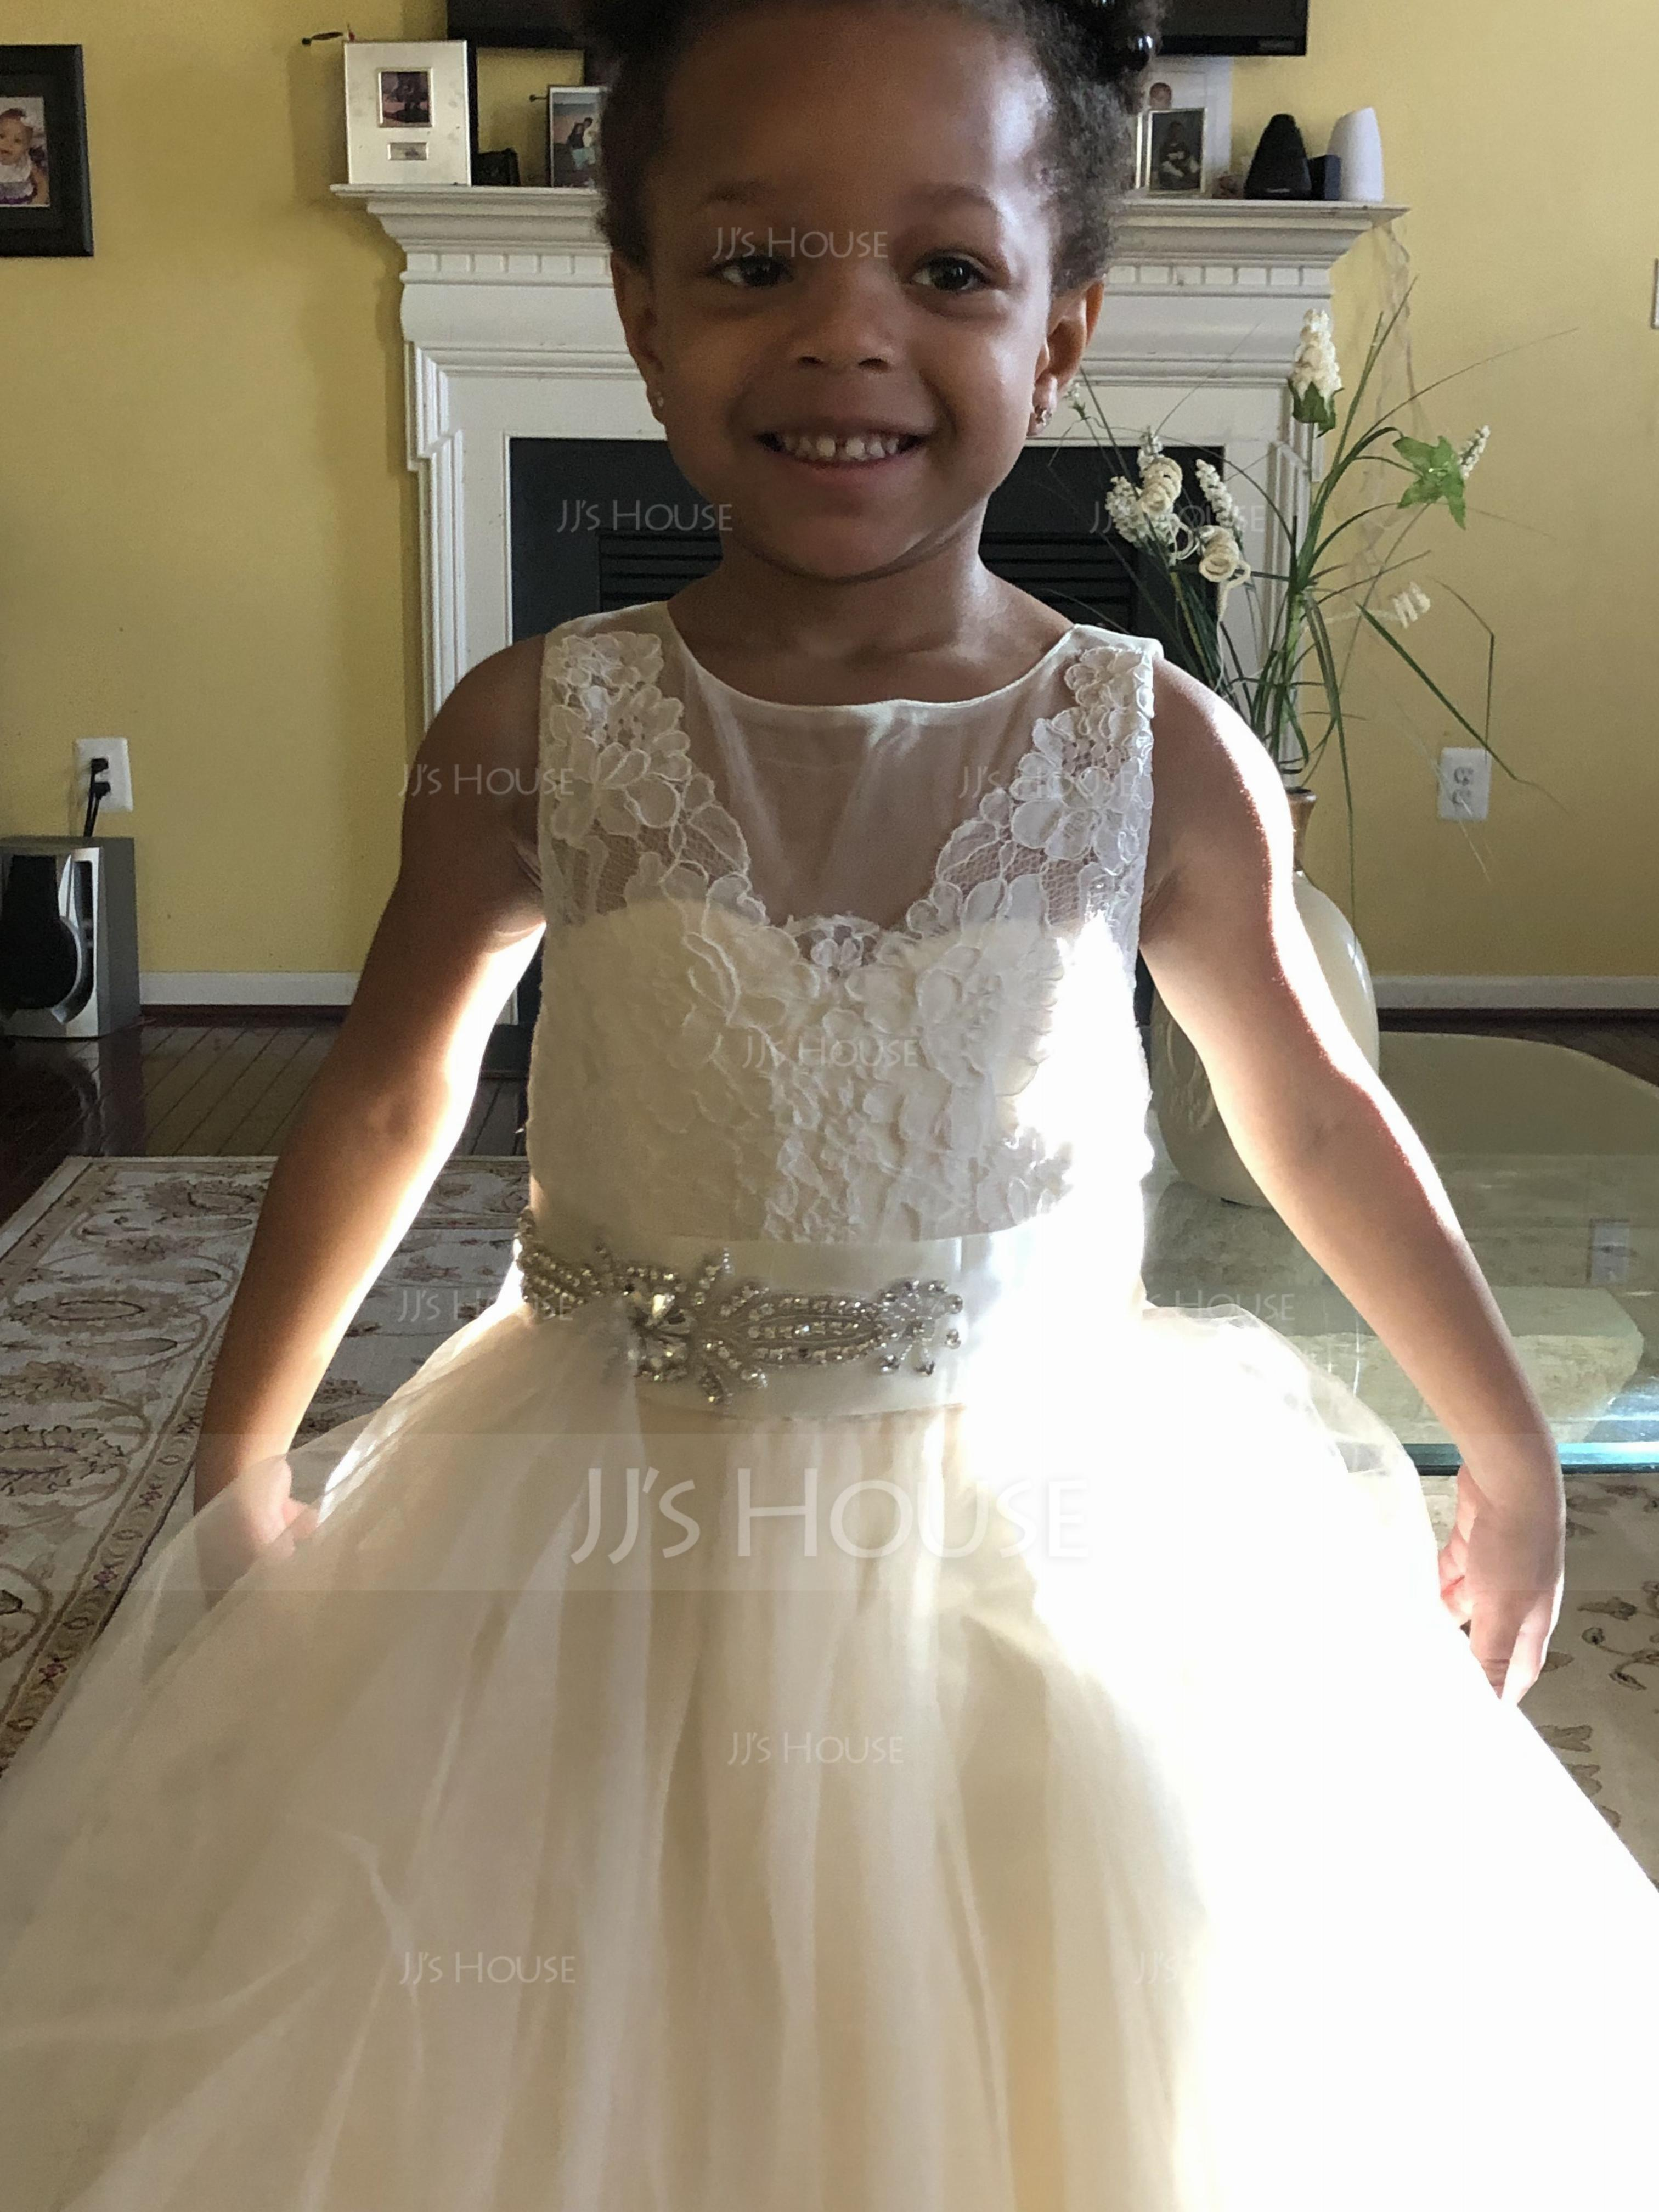 1f9763c41 I loved the flower girl dress I recently purchase. The dress arrived  quickly and the material used to make the dress was exquisite!